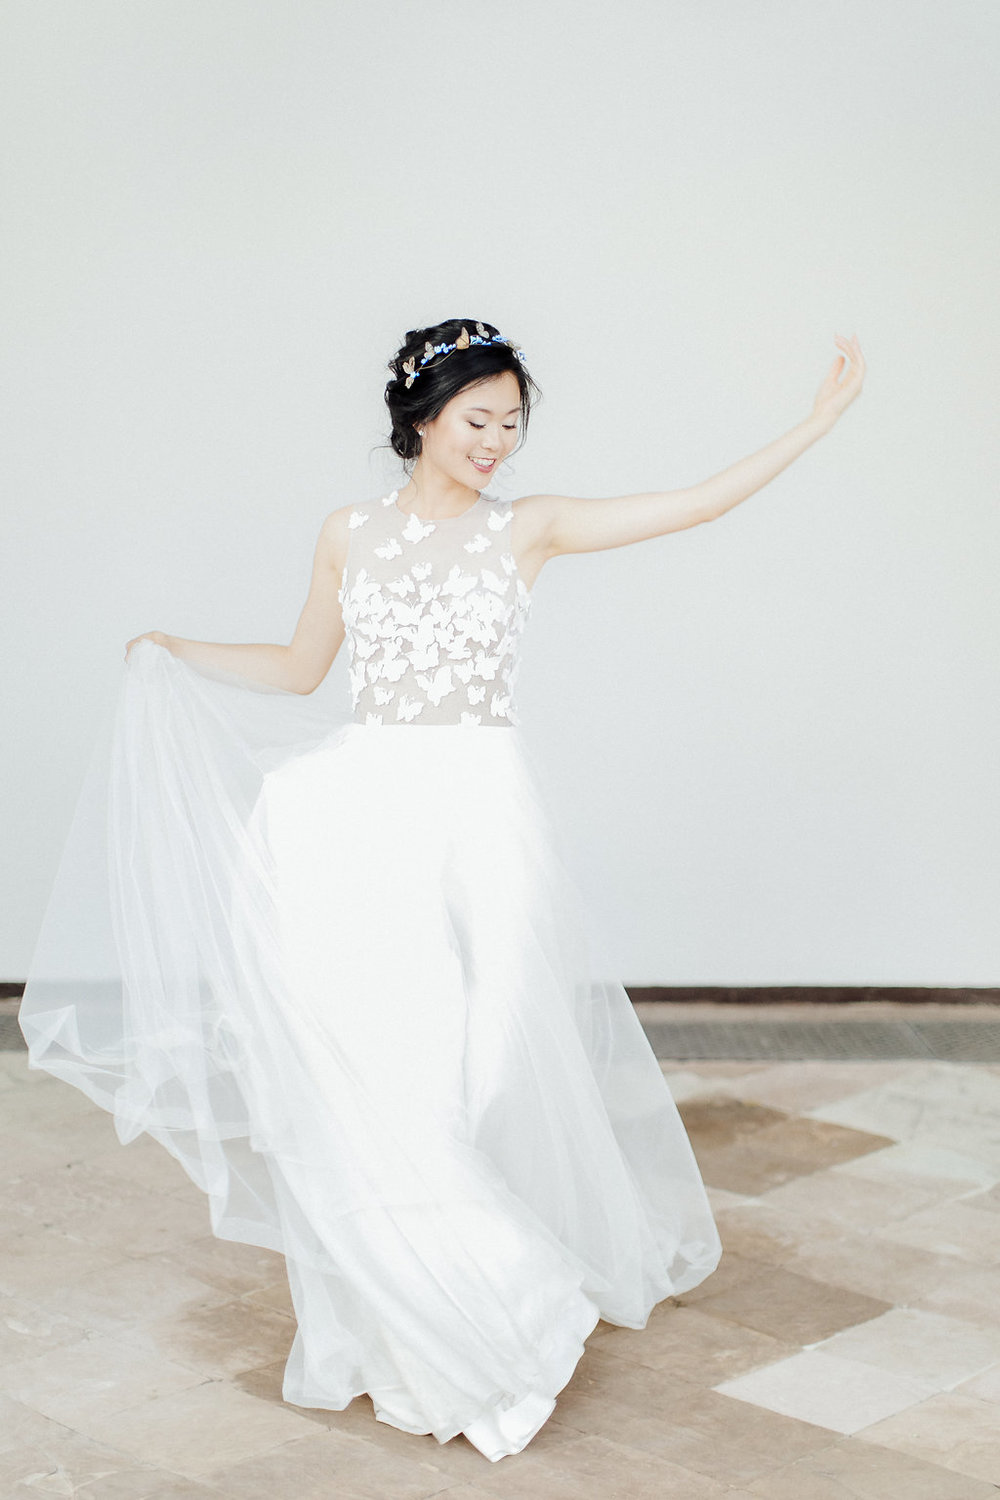 wedding dress, dancing bride, happy bride